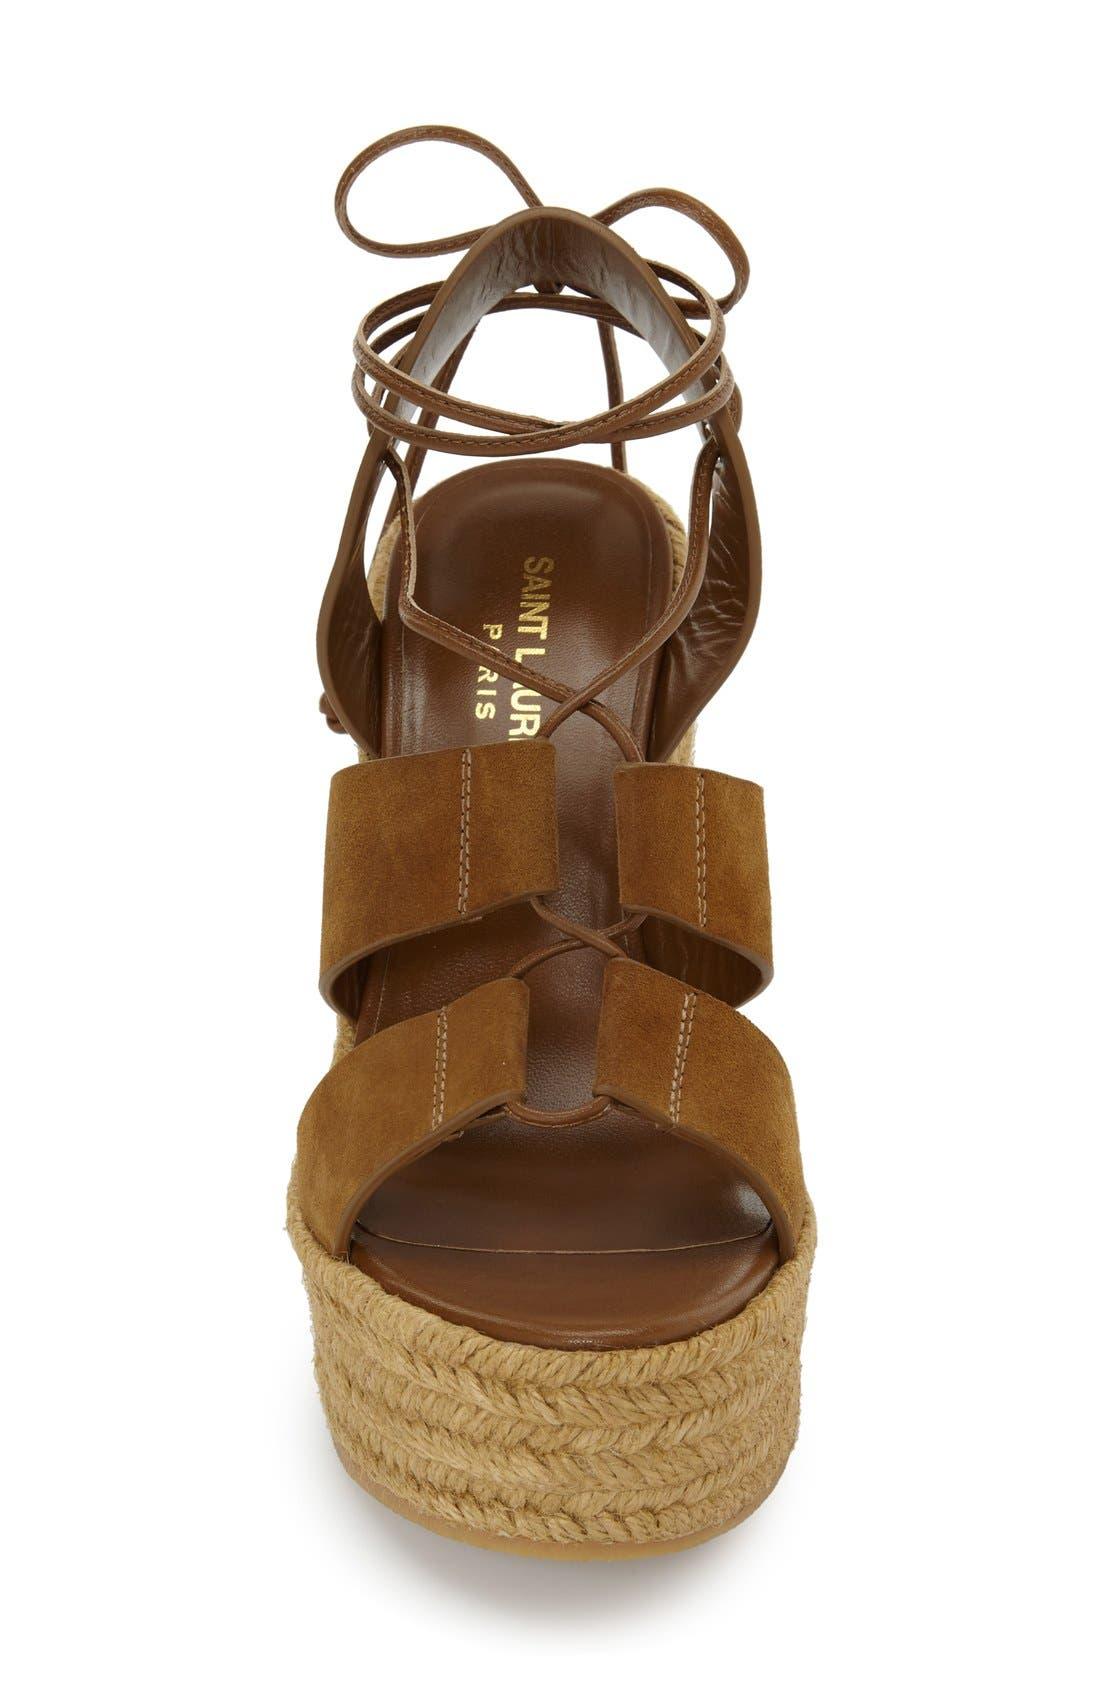 Woven Espadrille Wedge Sandal,                             Alternate thumbnail 3, color,                             Tan Suede